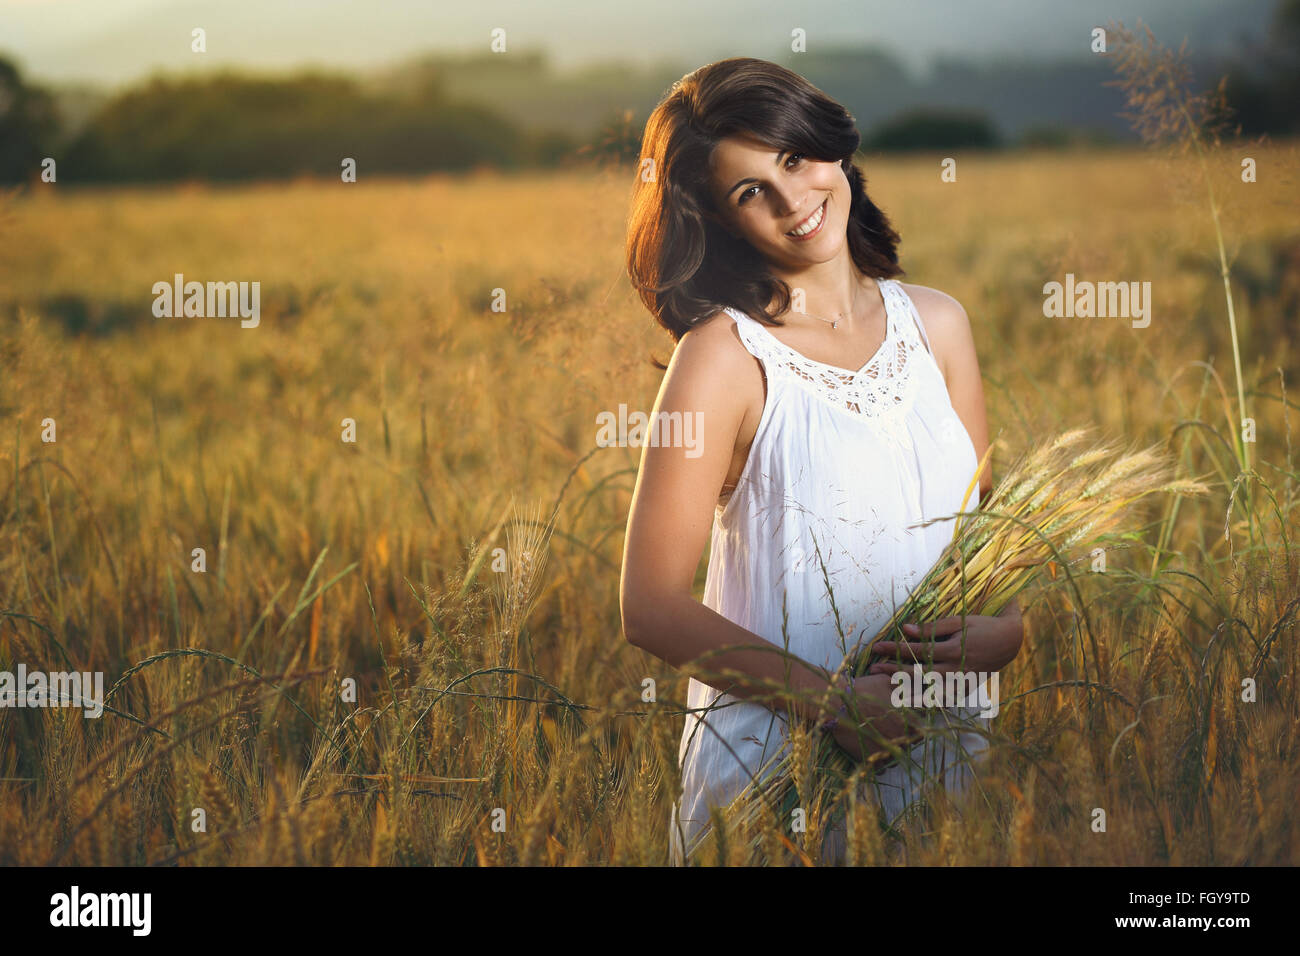 Beautiful smiling woman in a golden field at sunset. Summer season portrait Stock Photo